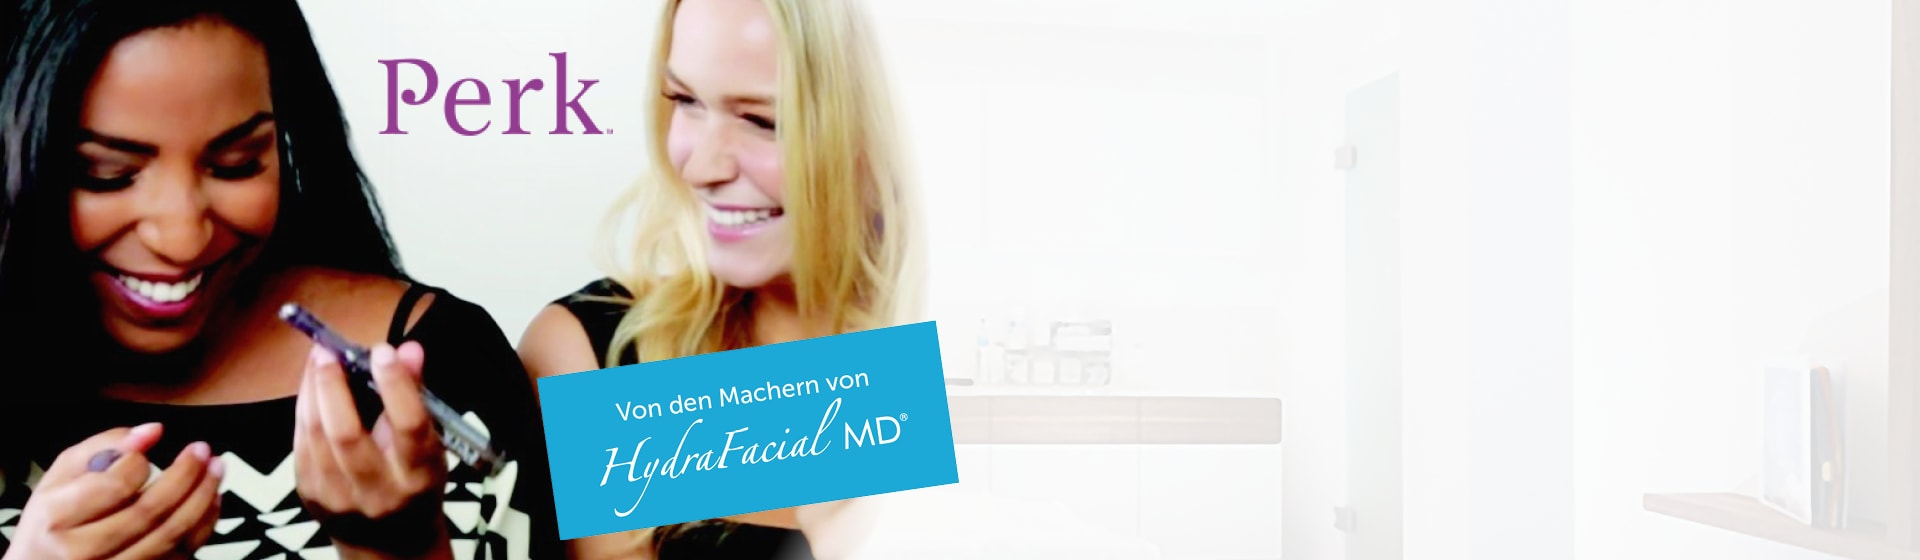 Slideshow Perk by Hydrafacial